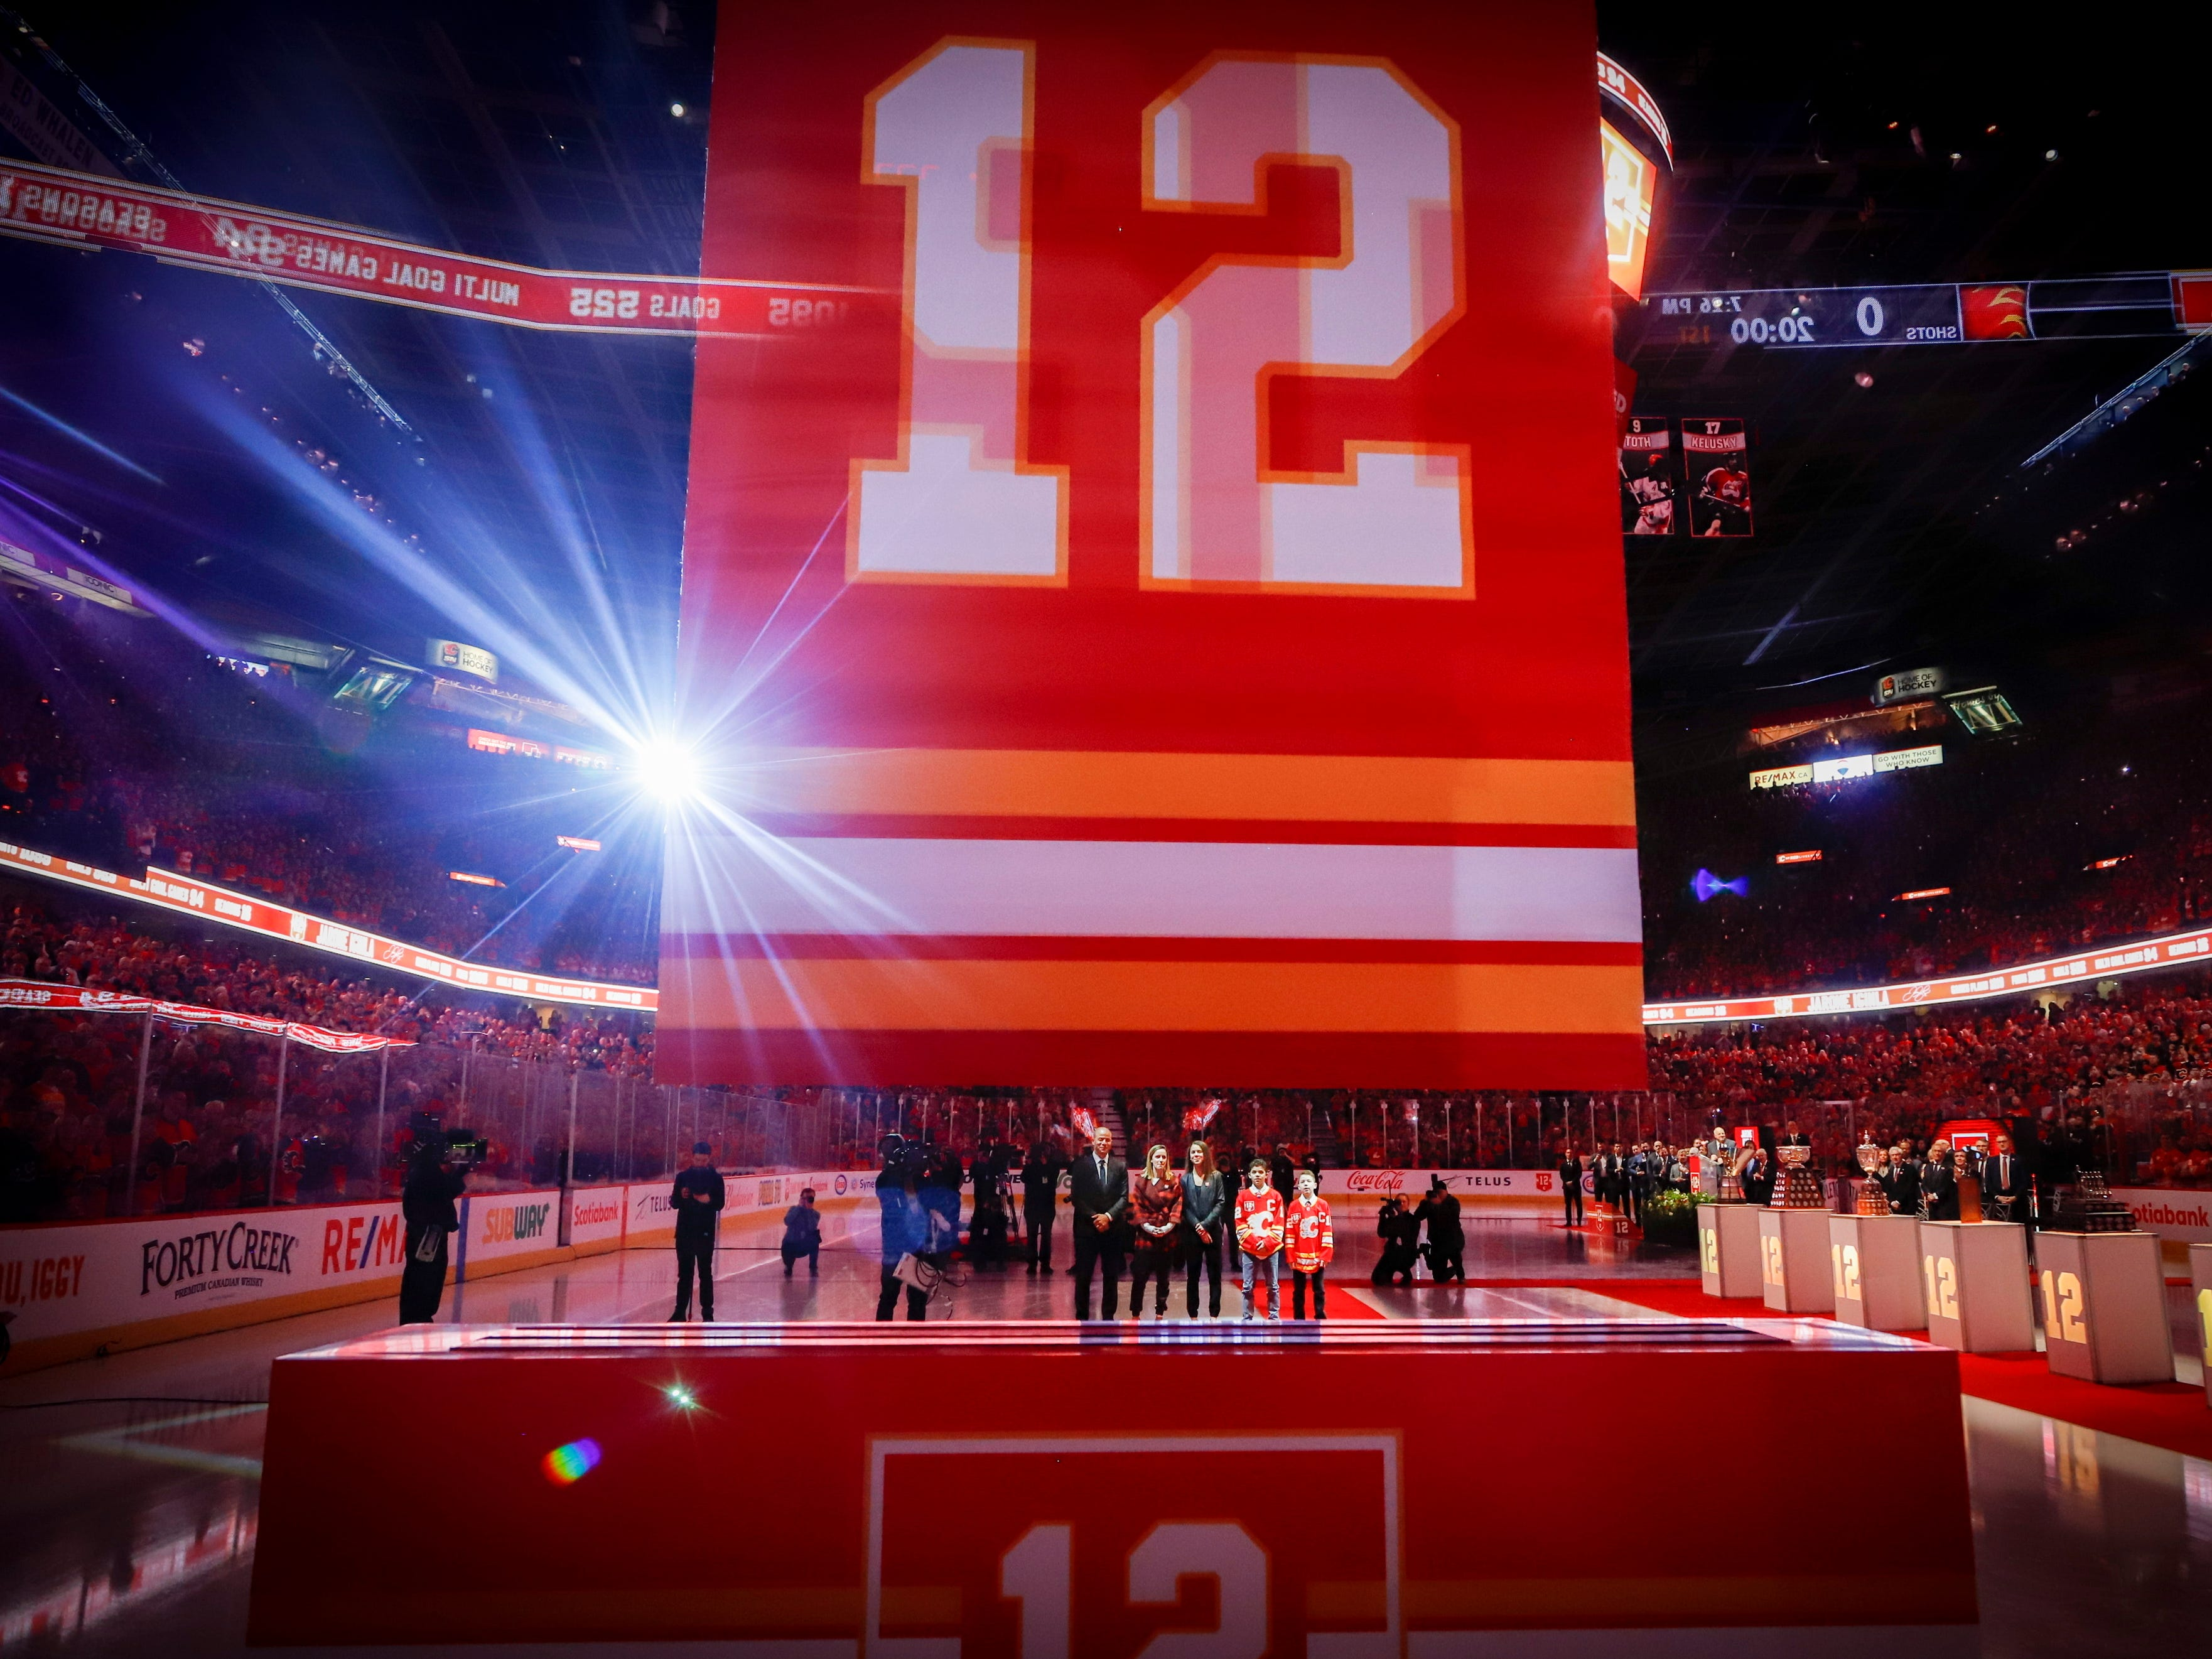 March 2: Former Calgary Flames captain Jarome Iginla and his family watch as his No. 12 jersey is retired.